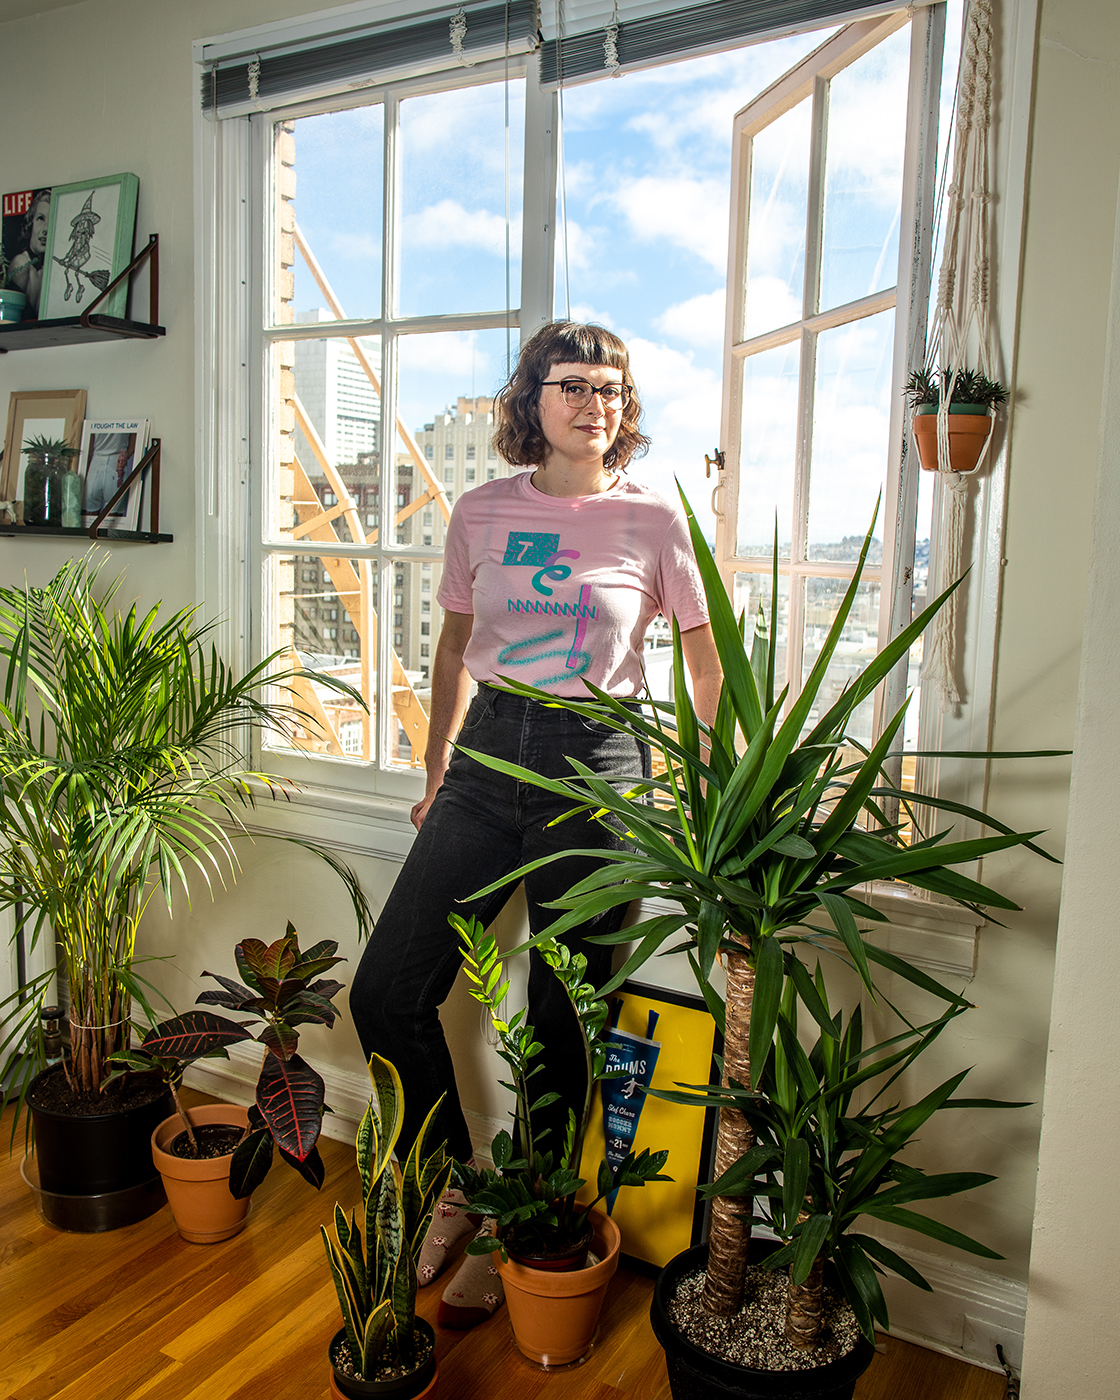 Woman standing by open window amid an abundance of plants shot by Jaime Borschuk for Women at Home project